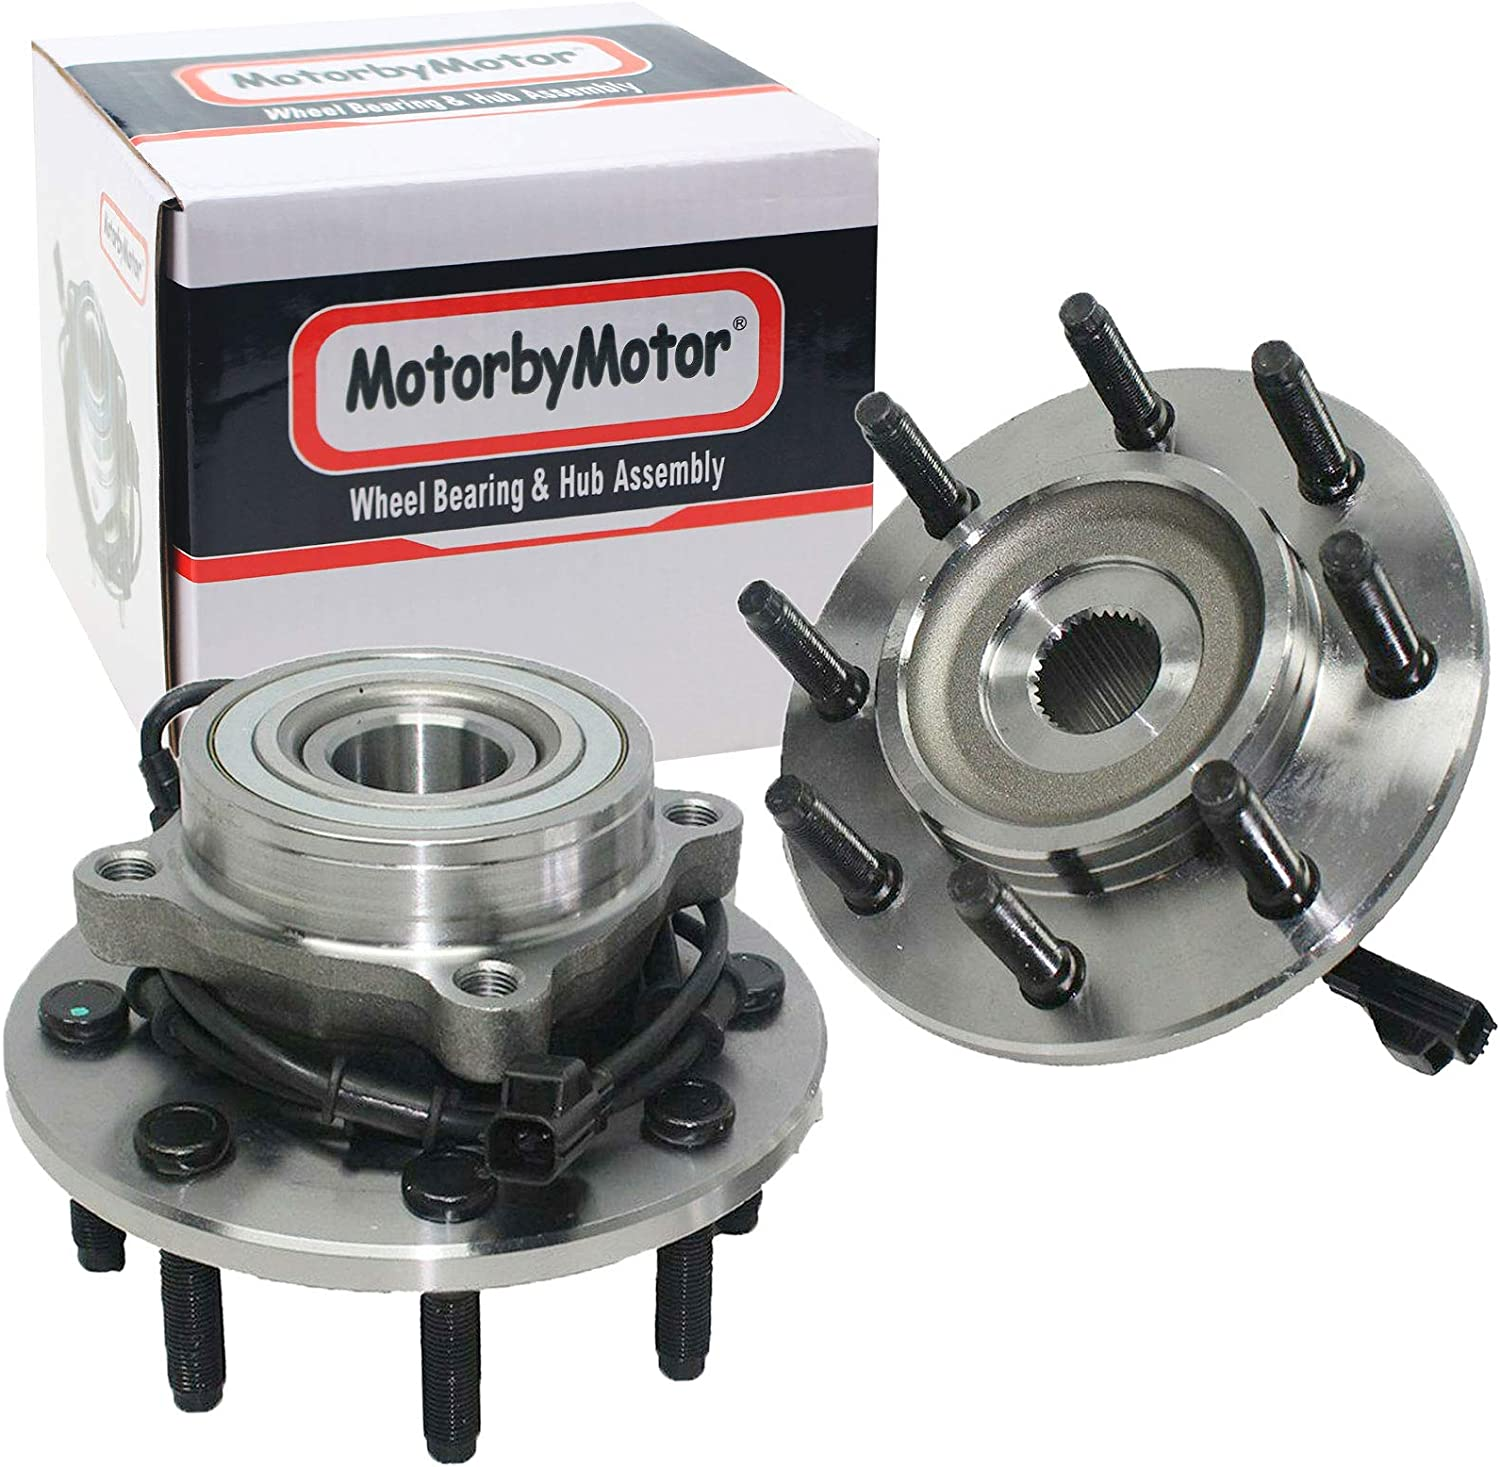 MotorbyMotor 515061 Front Wheel Bearing 卓抜 Fits 超定番 Hub Assembly for